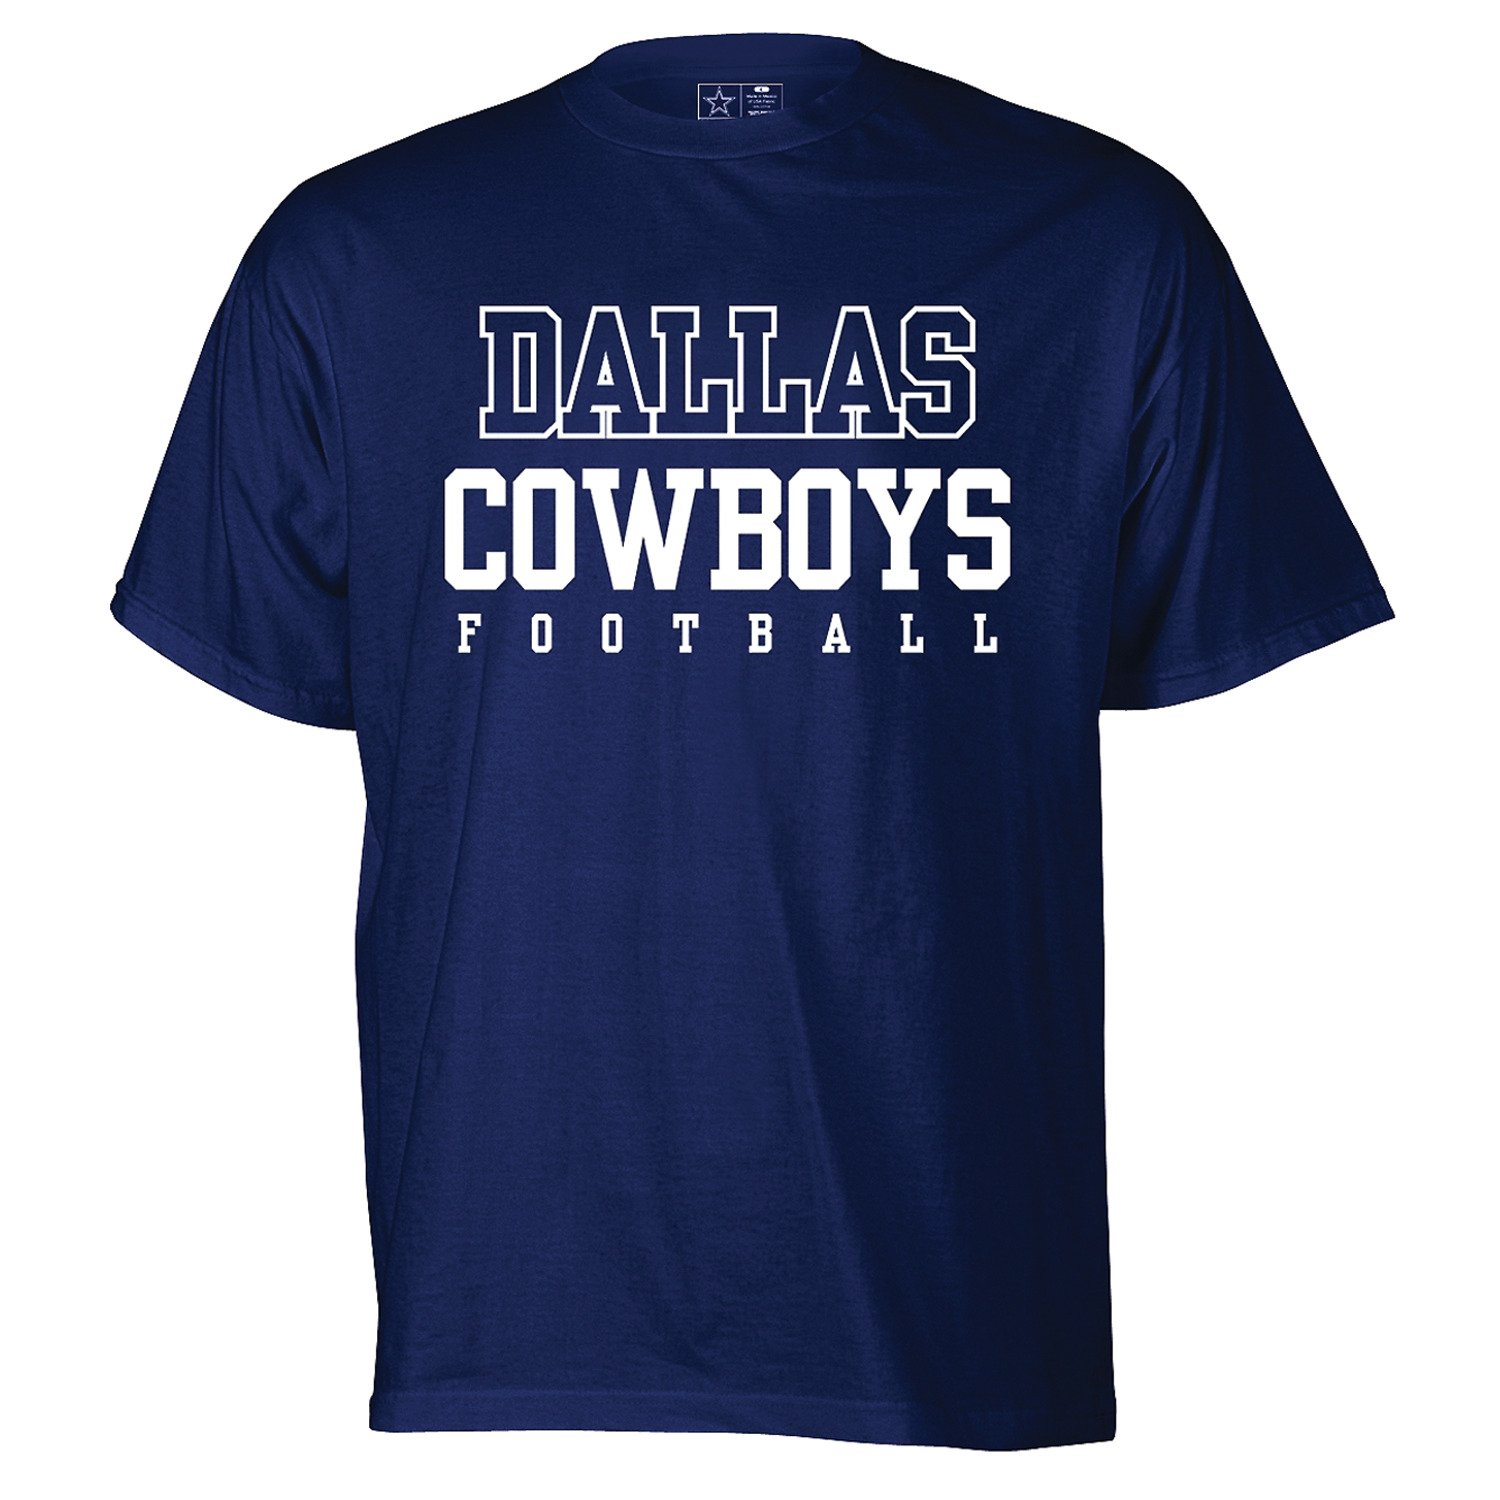 db9d0fe84 Display product reviews for Dallas Cowboys Men s Practice T-shirt